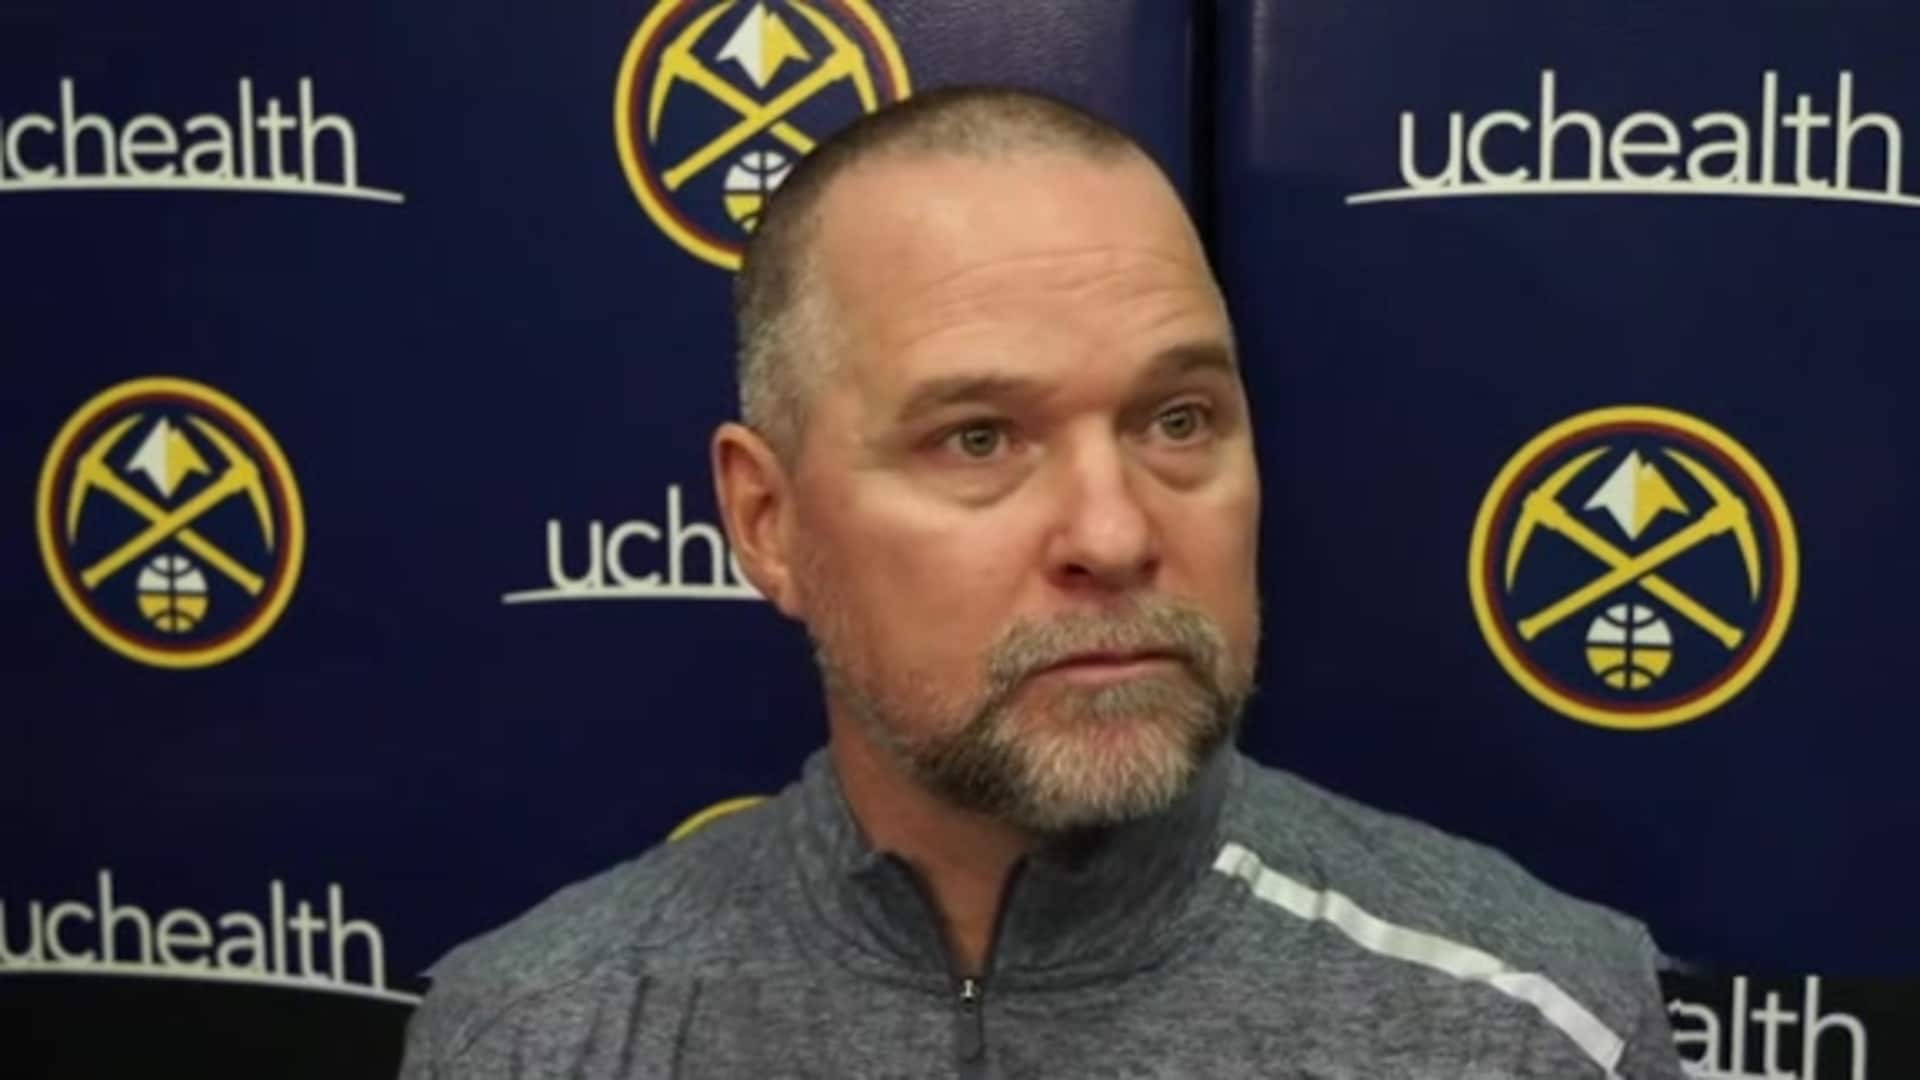 Nuggets practice: Michael Malone interview (11/19/19)